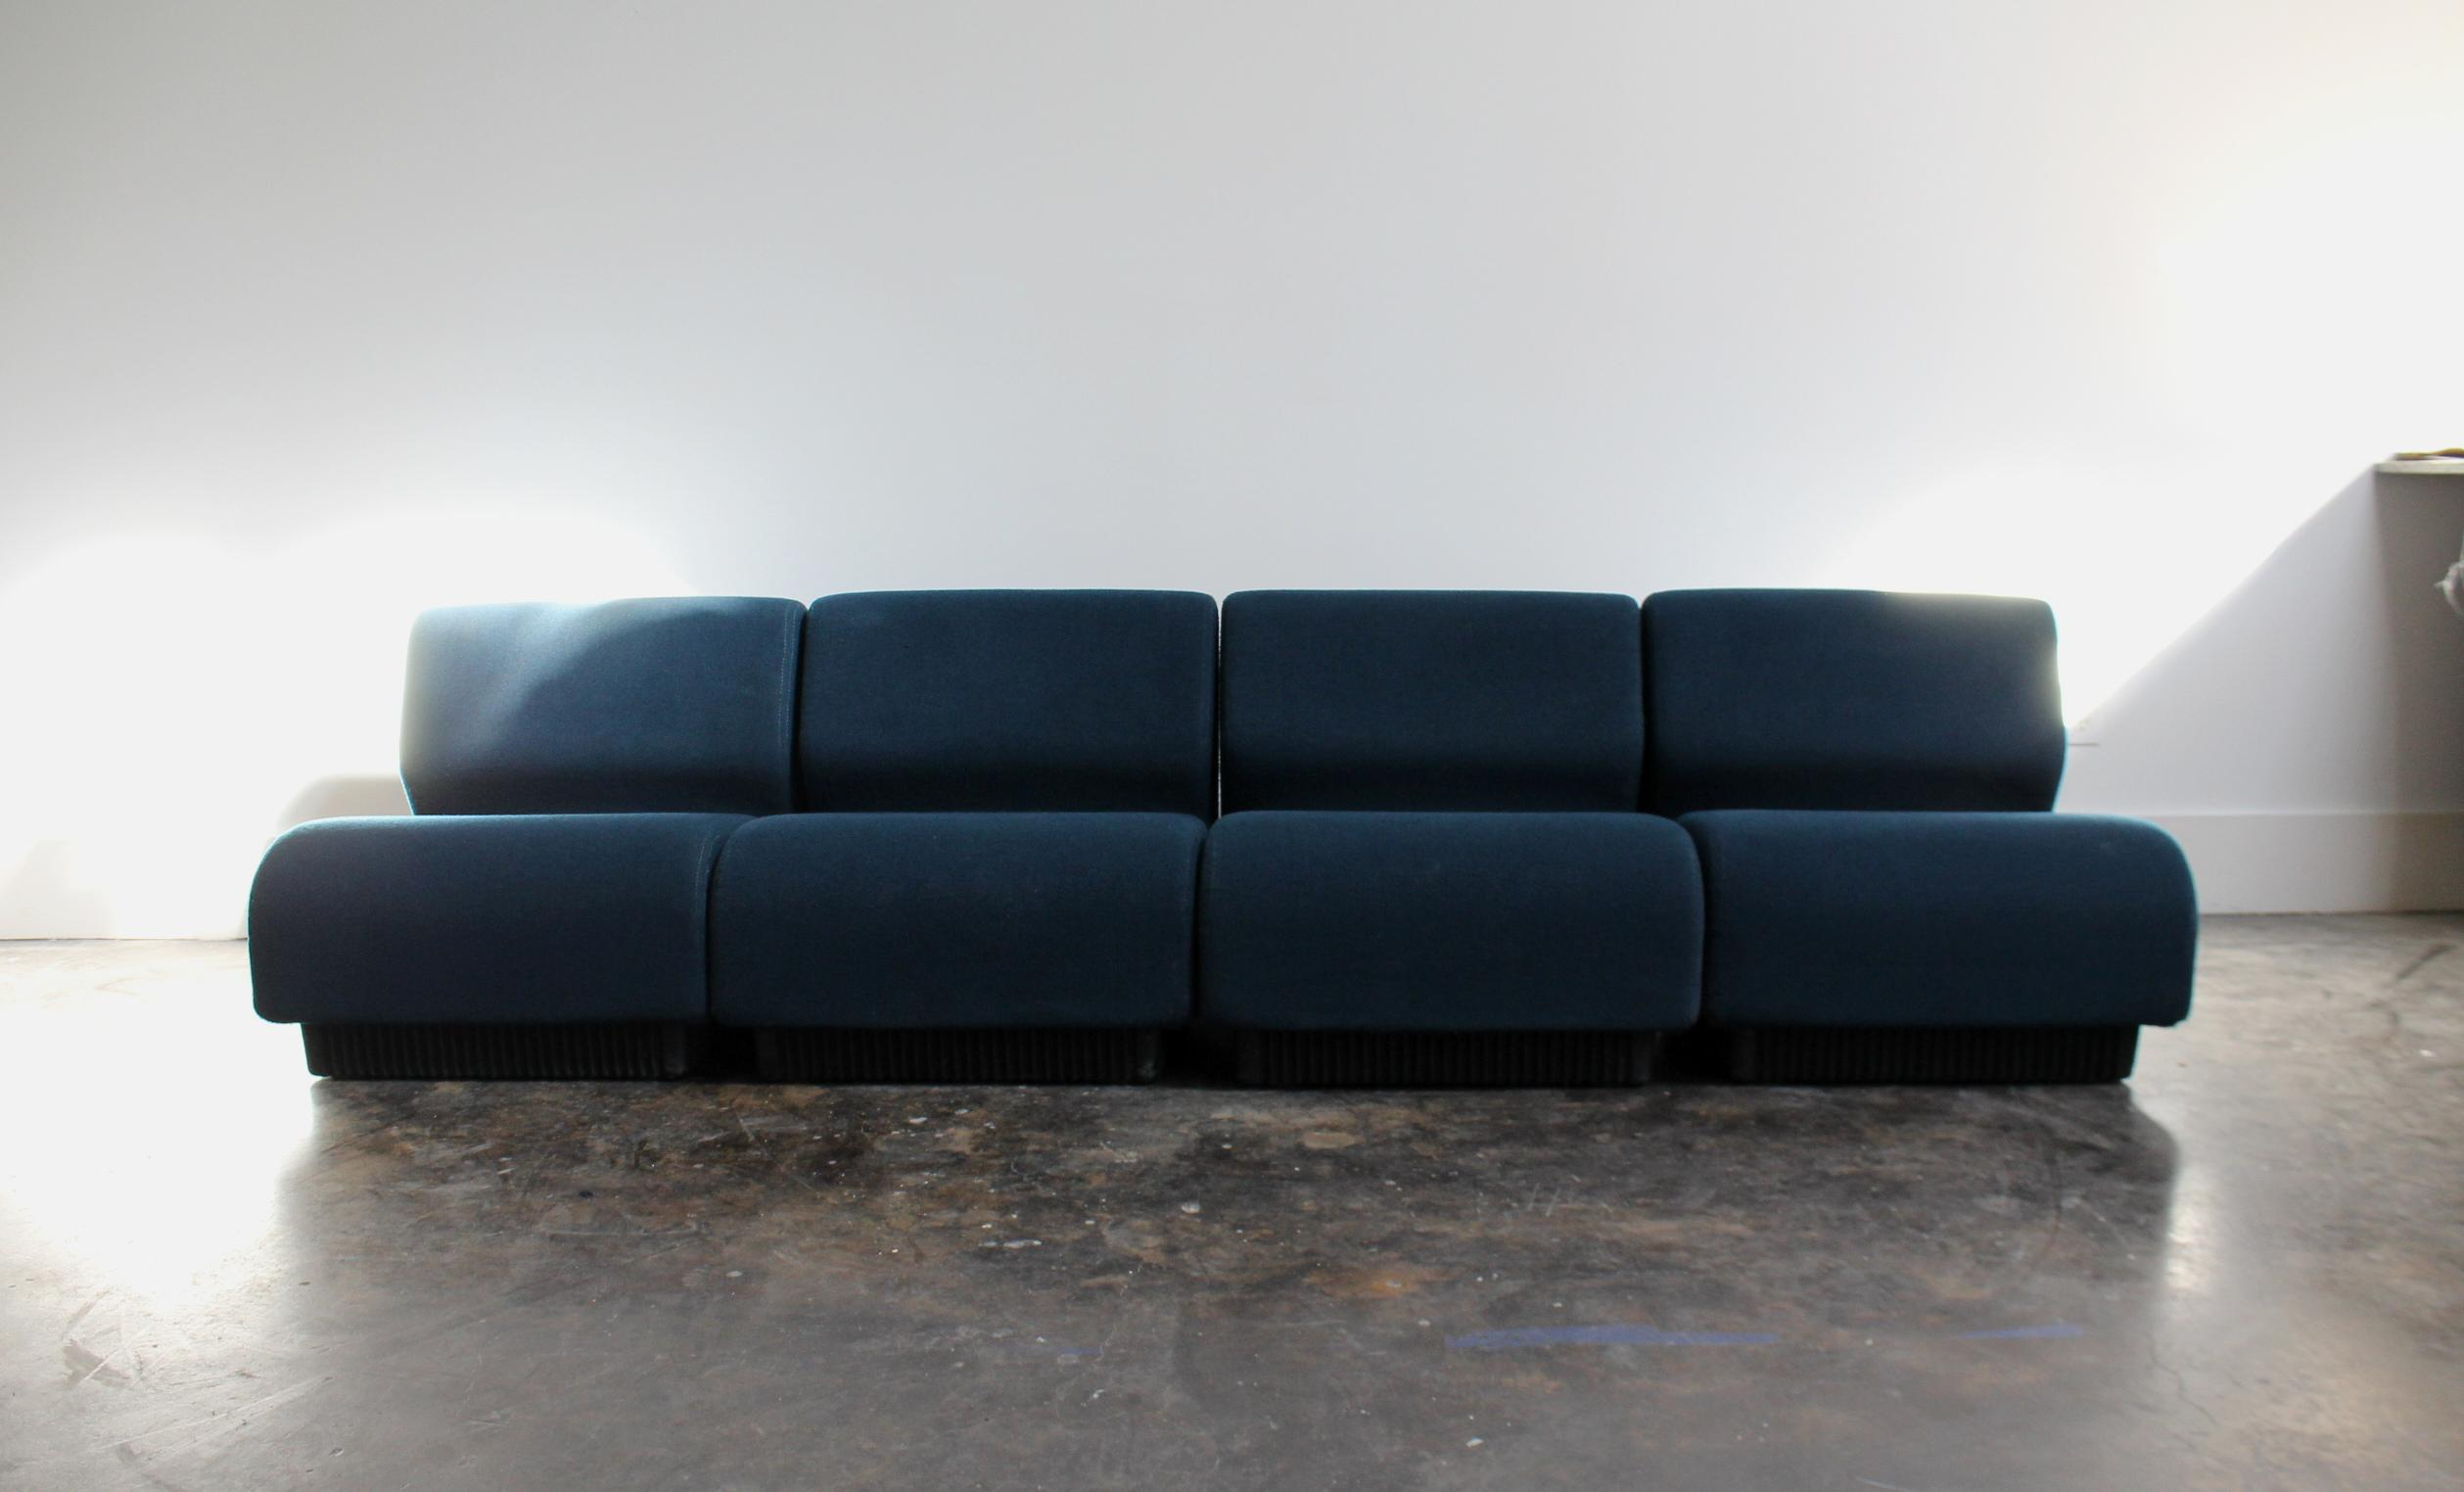 chadwick sofa black living room colour scheme vintage modern modular by don for herman miller chairish set designed in the 1970 s and manufactured